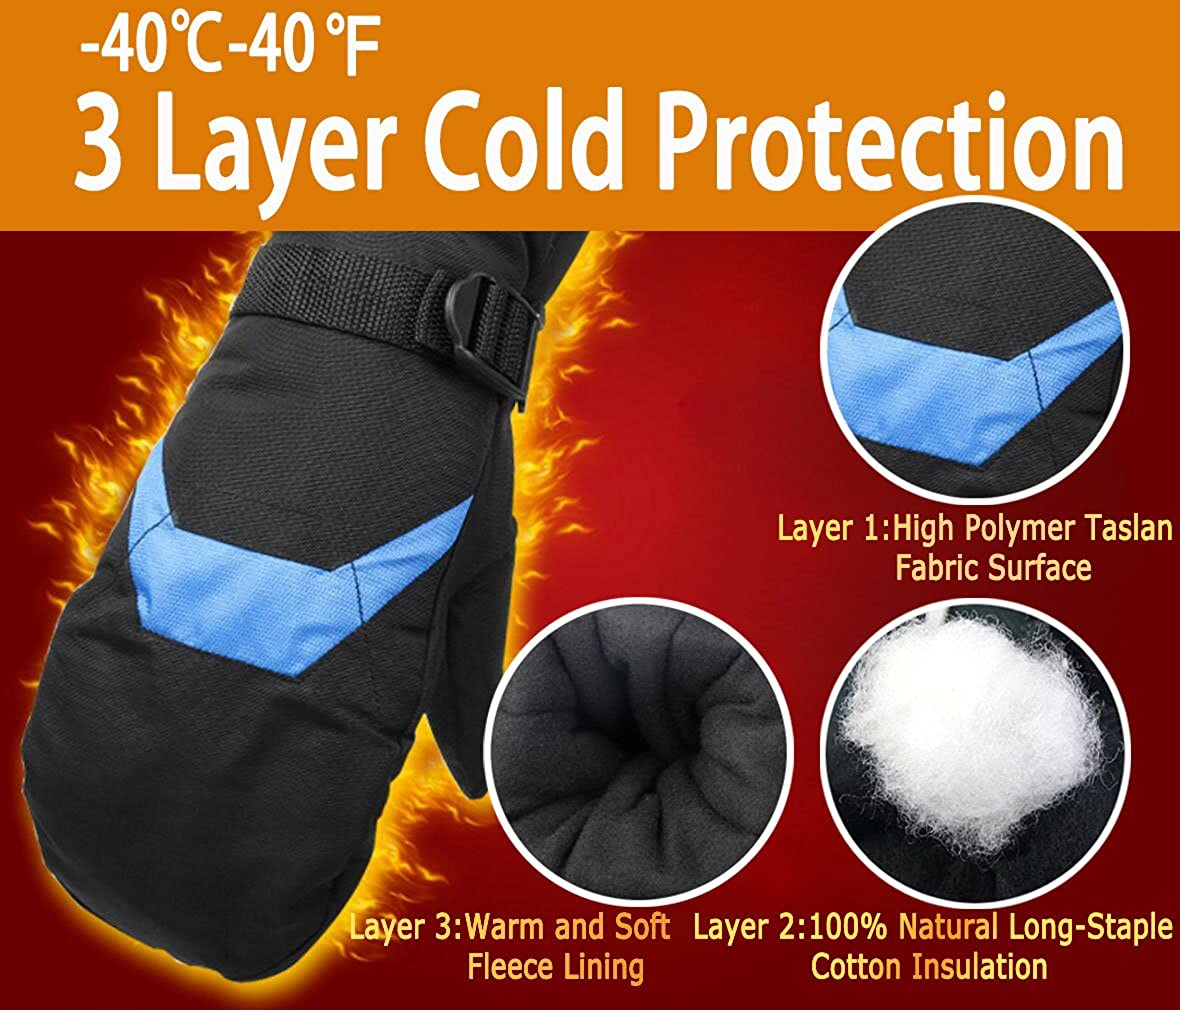 Windproof Waterproof Thermal Mitts Mittens Gloves for Man Male Black//Grey Warm Outdoor Winter Snow Gloves for Skiing Snowboarding Snowmobile Snowballs Shredding Shoveling Barrageon Ski Gloves